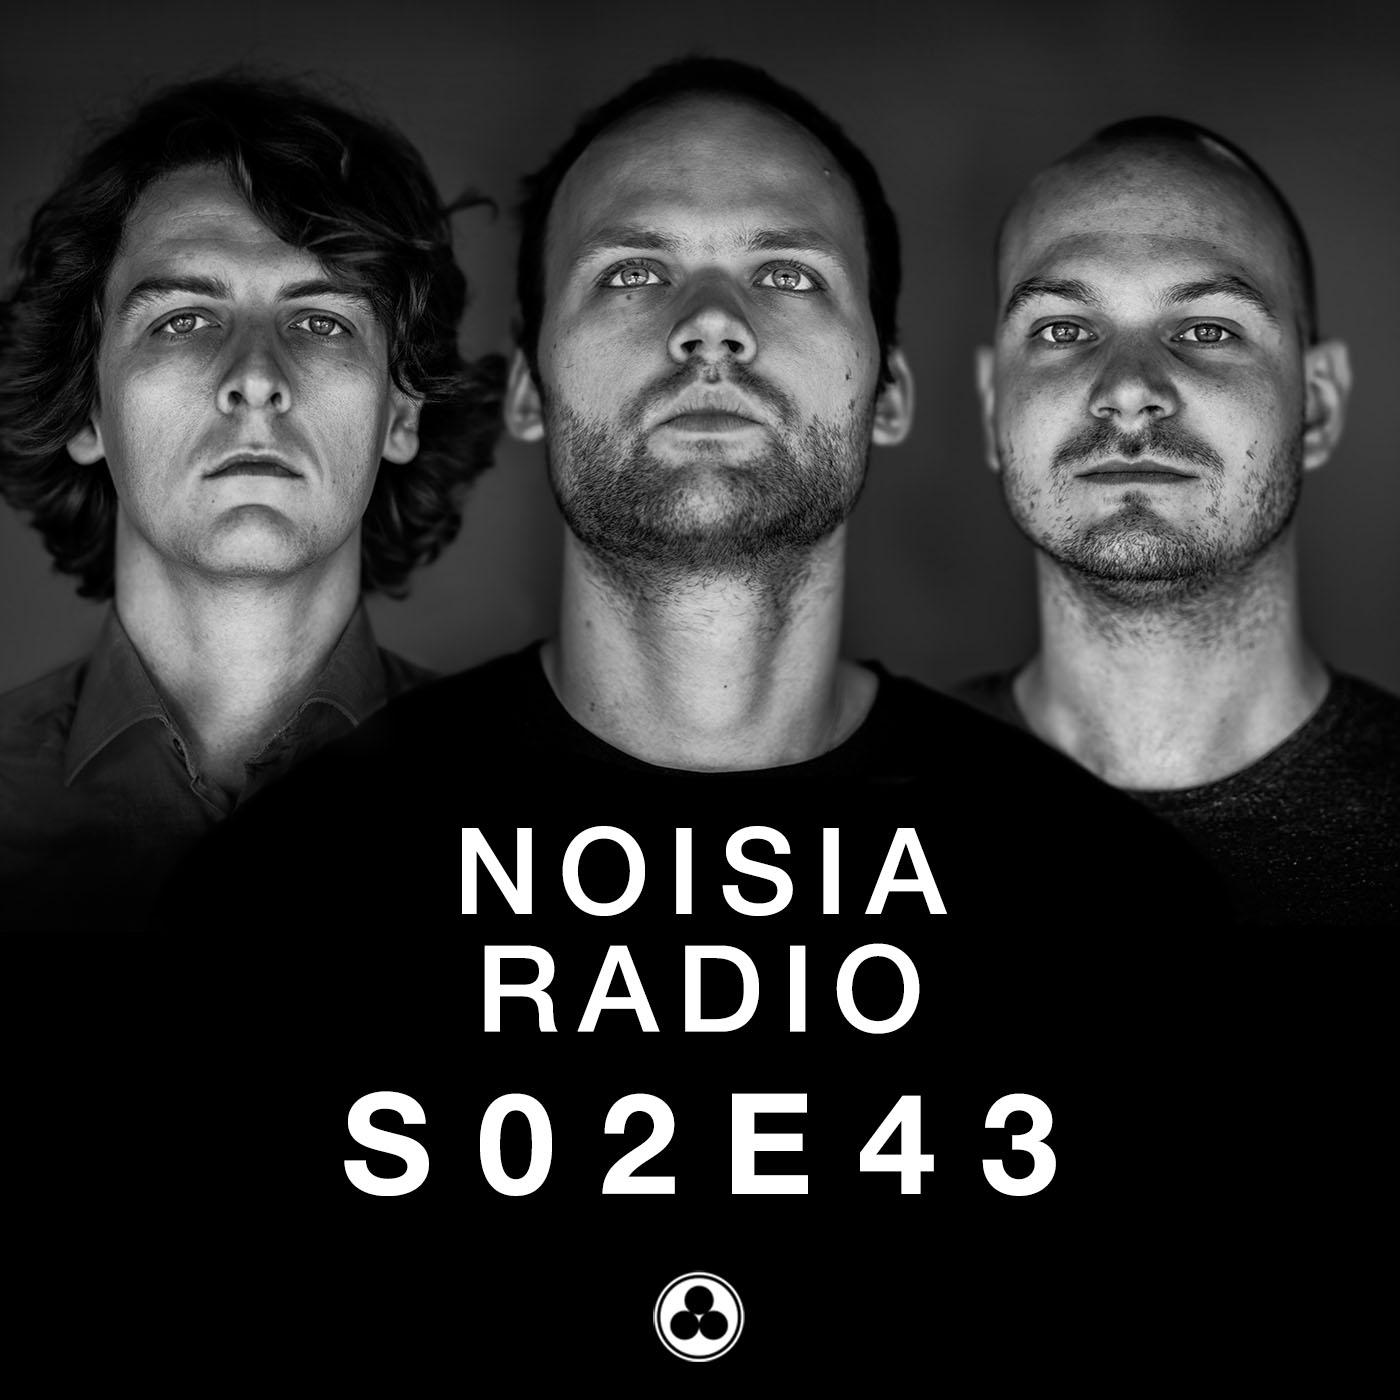 Noisia Radio S02E43